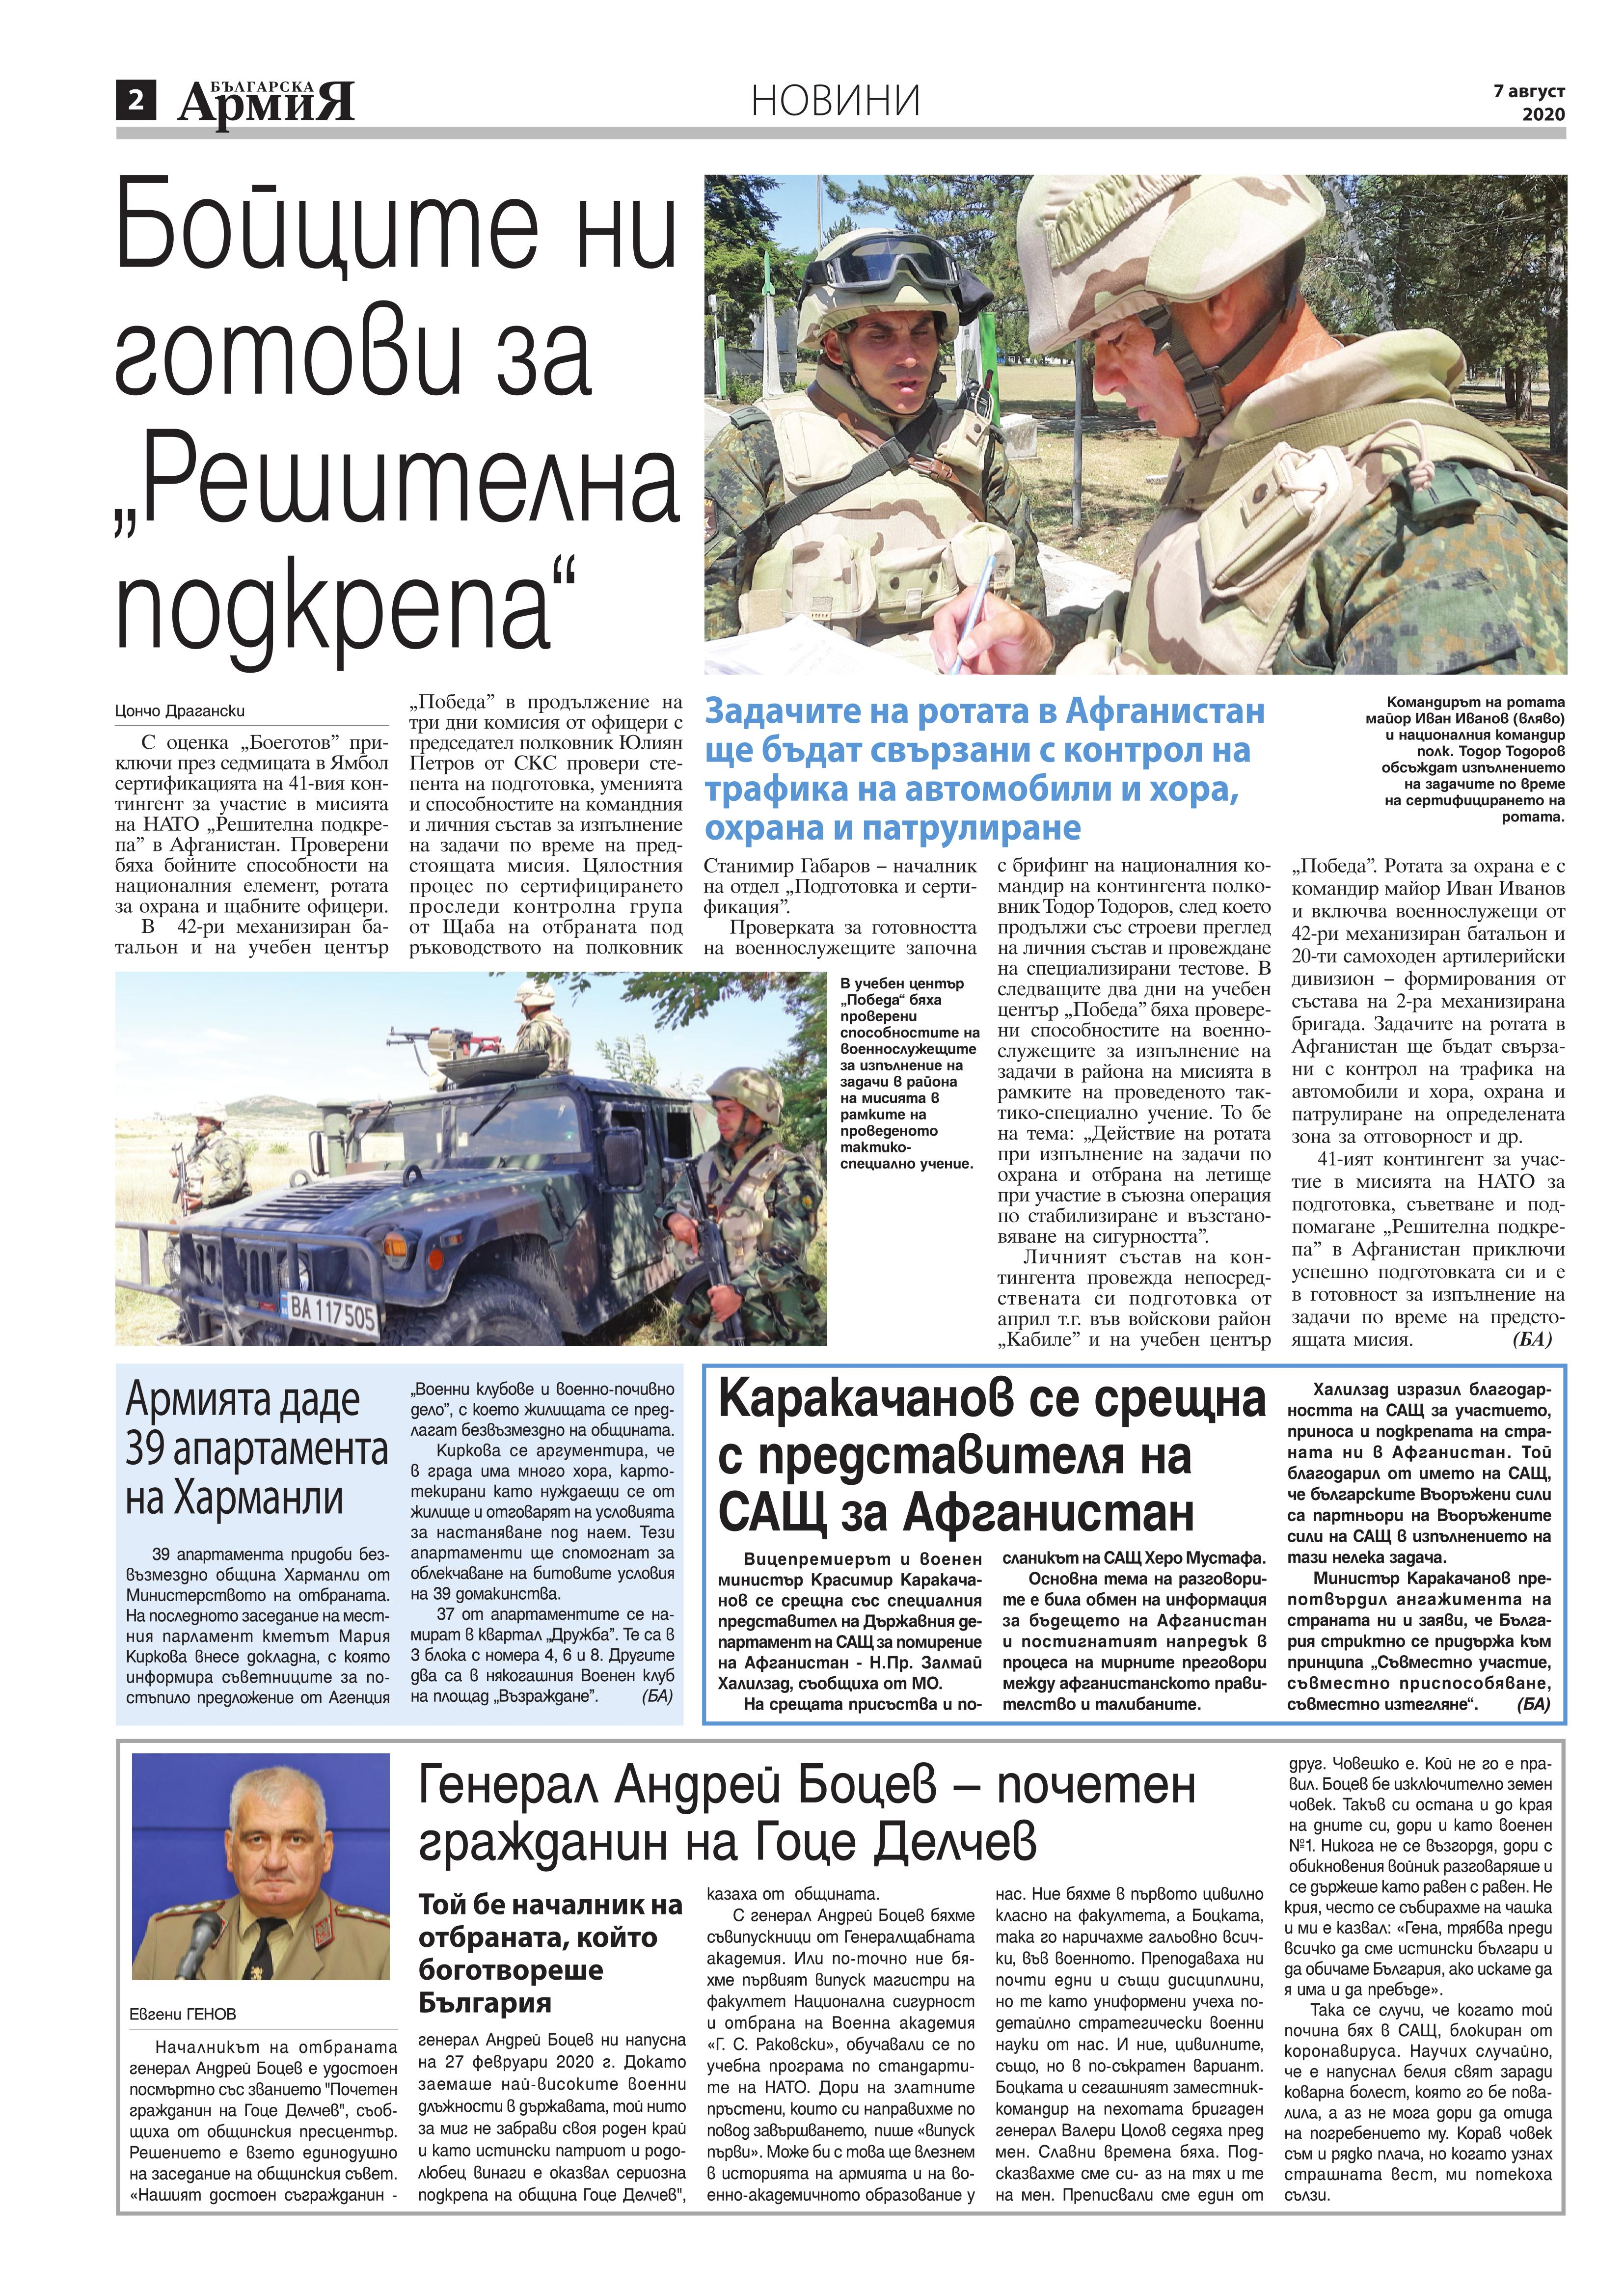 https://armymedia.bg/wp-content/uploads/2015/06/02.page1_-145.jpg